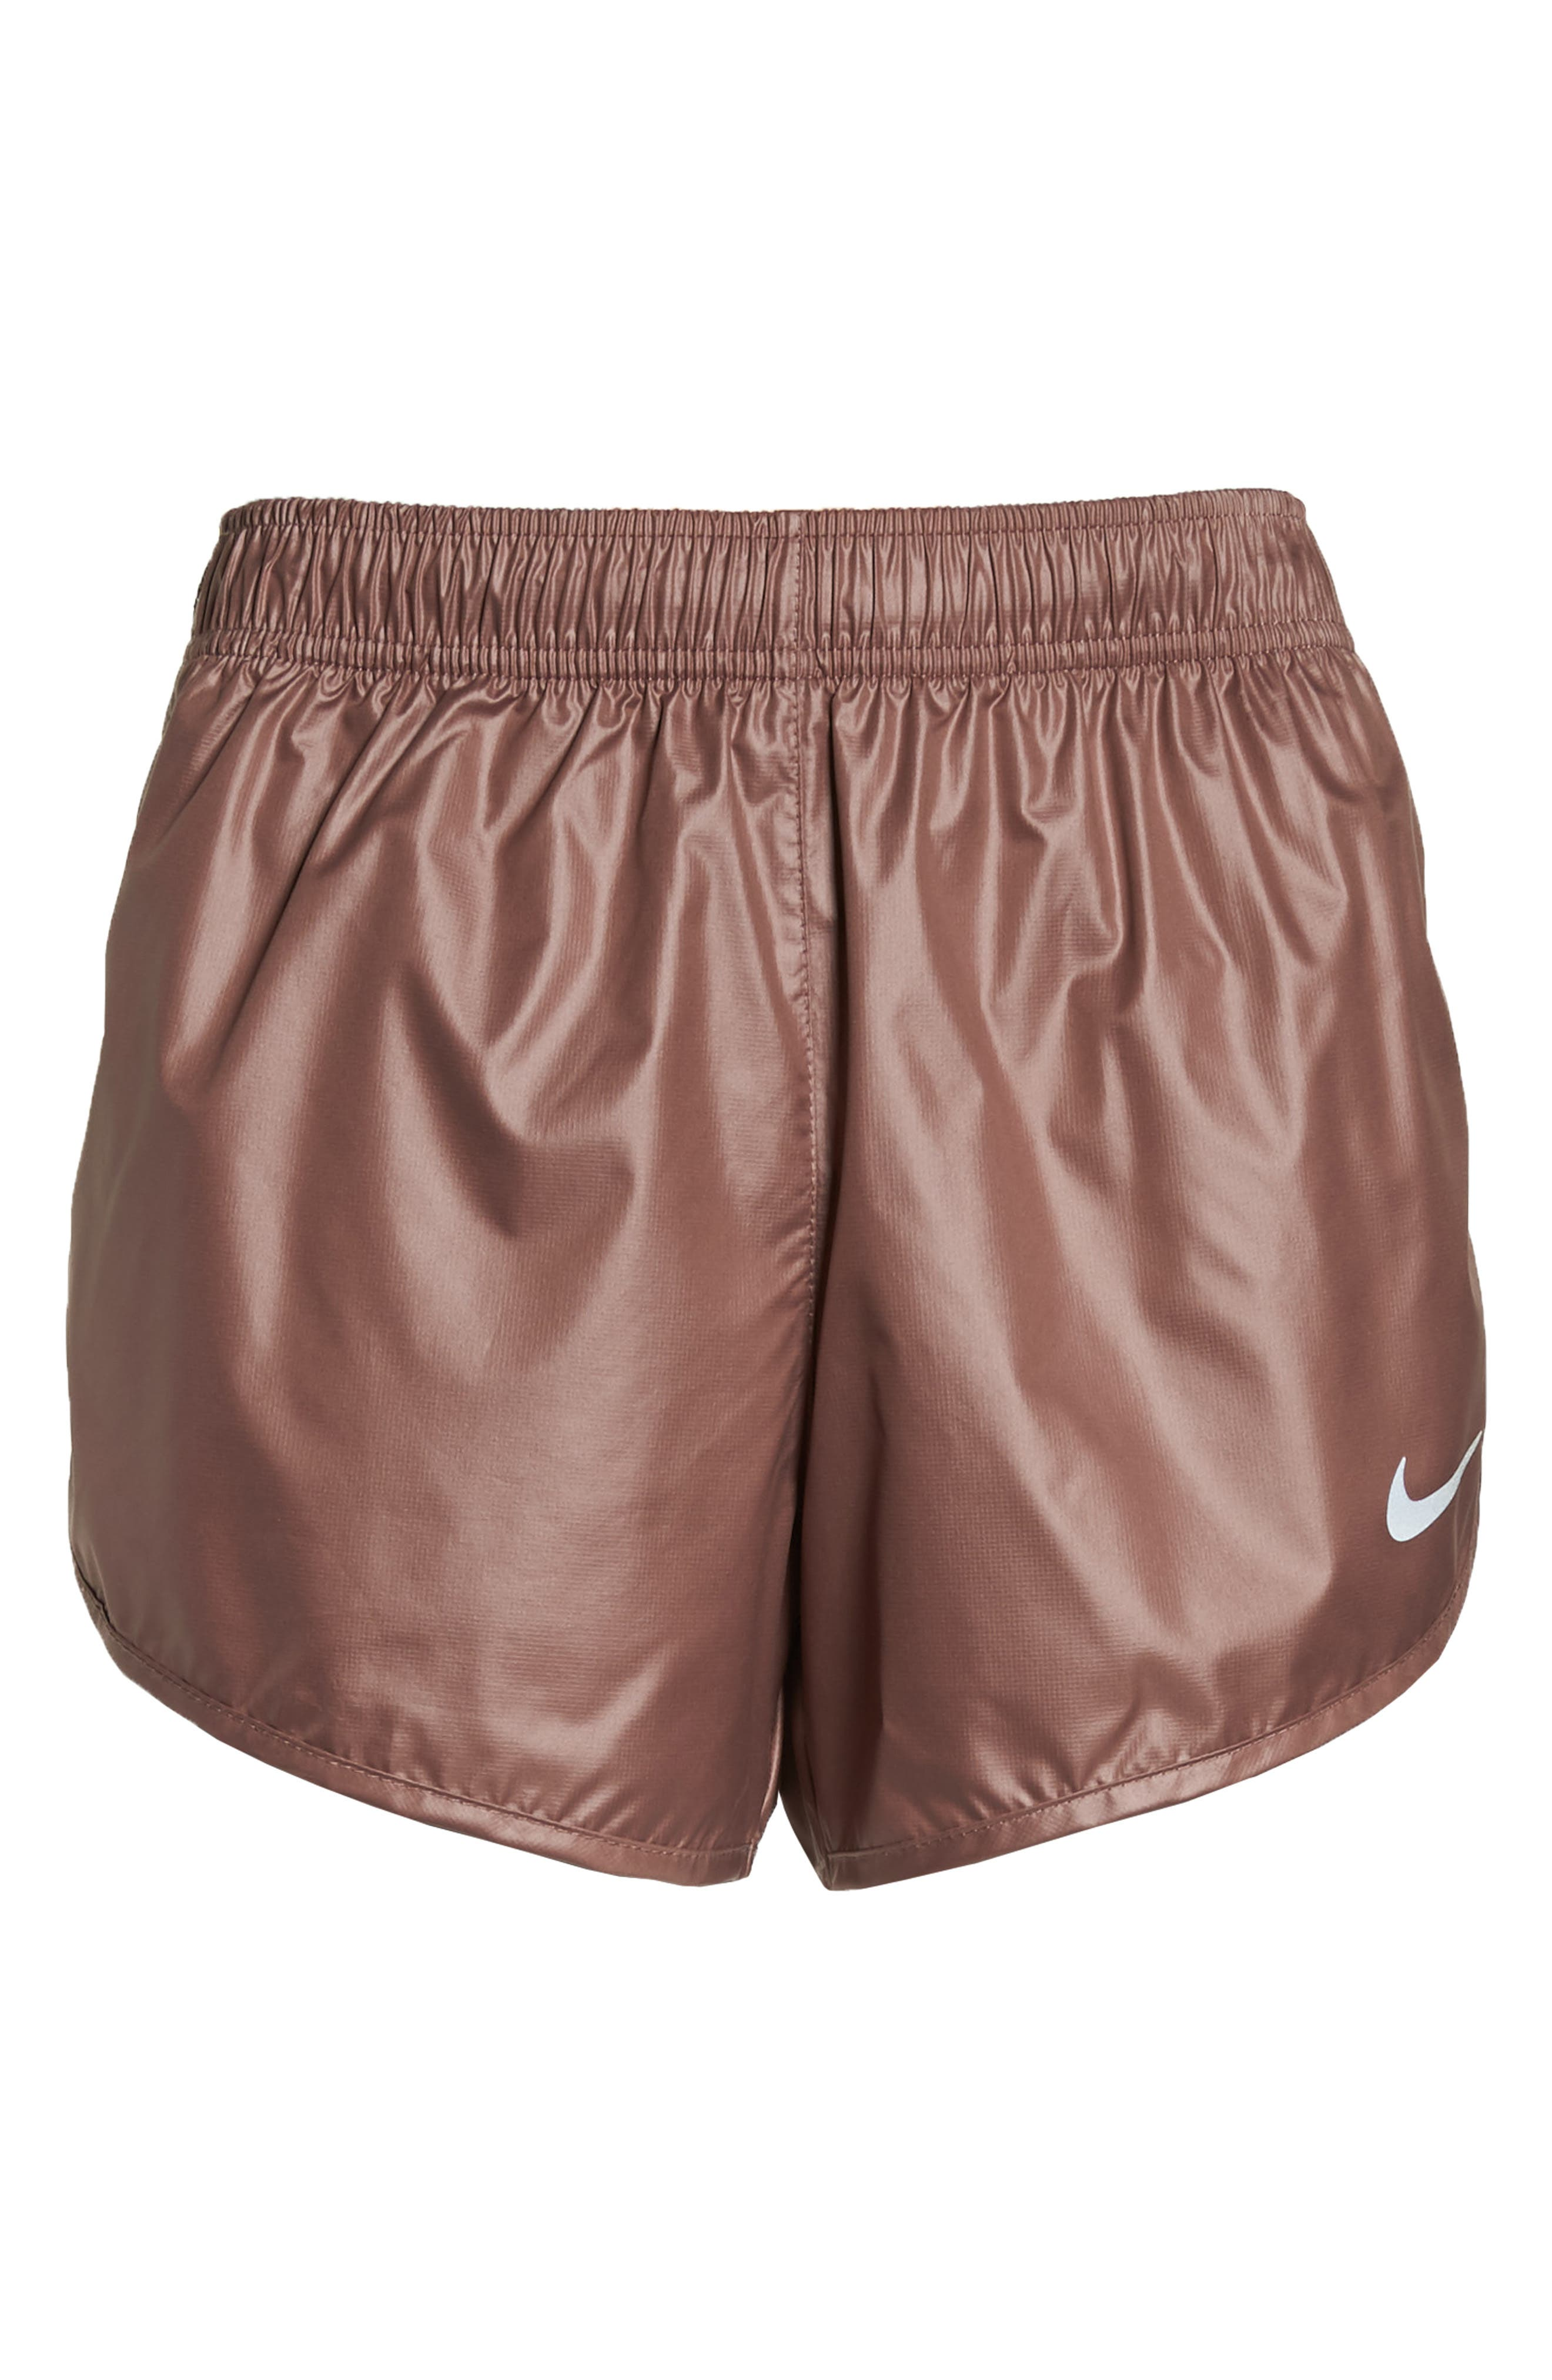 Tempo Running Shorts,                             Alternate thumbnail 7, color,                             SMOKEY MAUVE